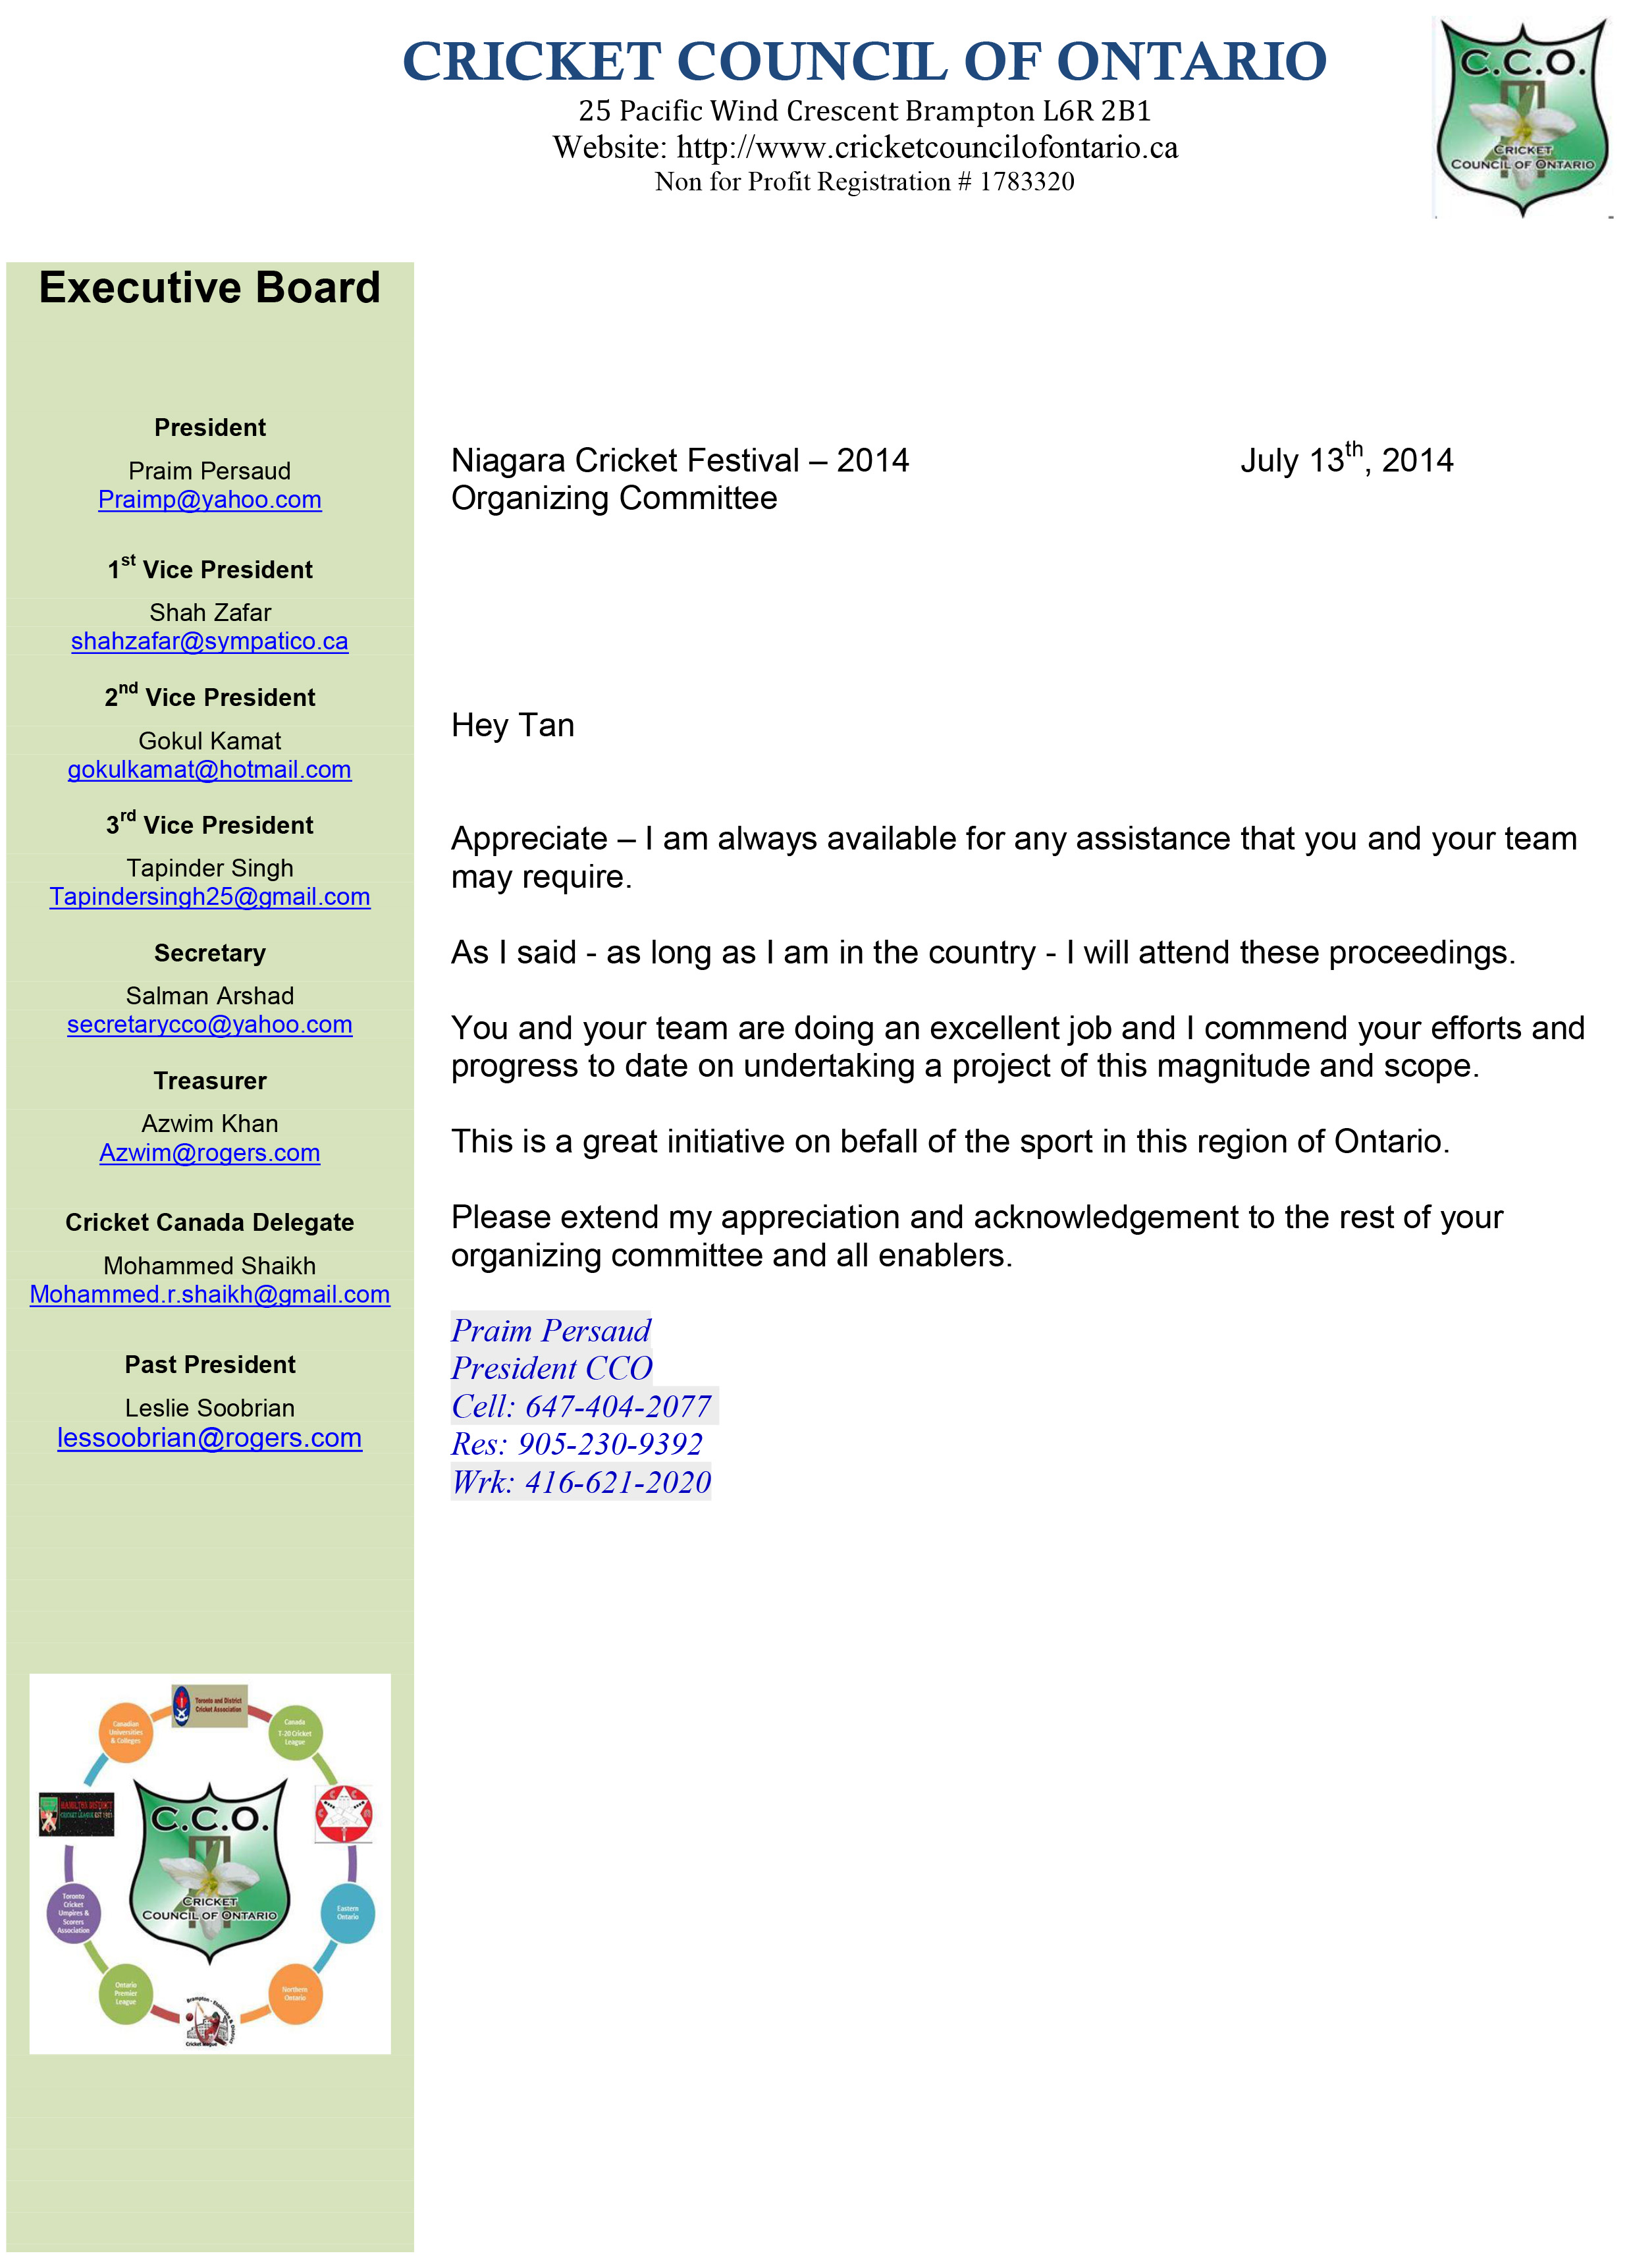 CCO - Approval, Recognition and Support for Annual Niagara Festival - 2014